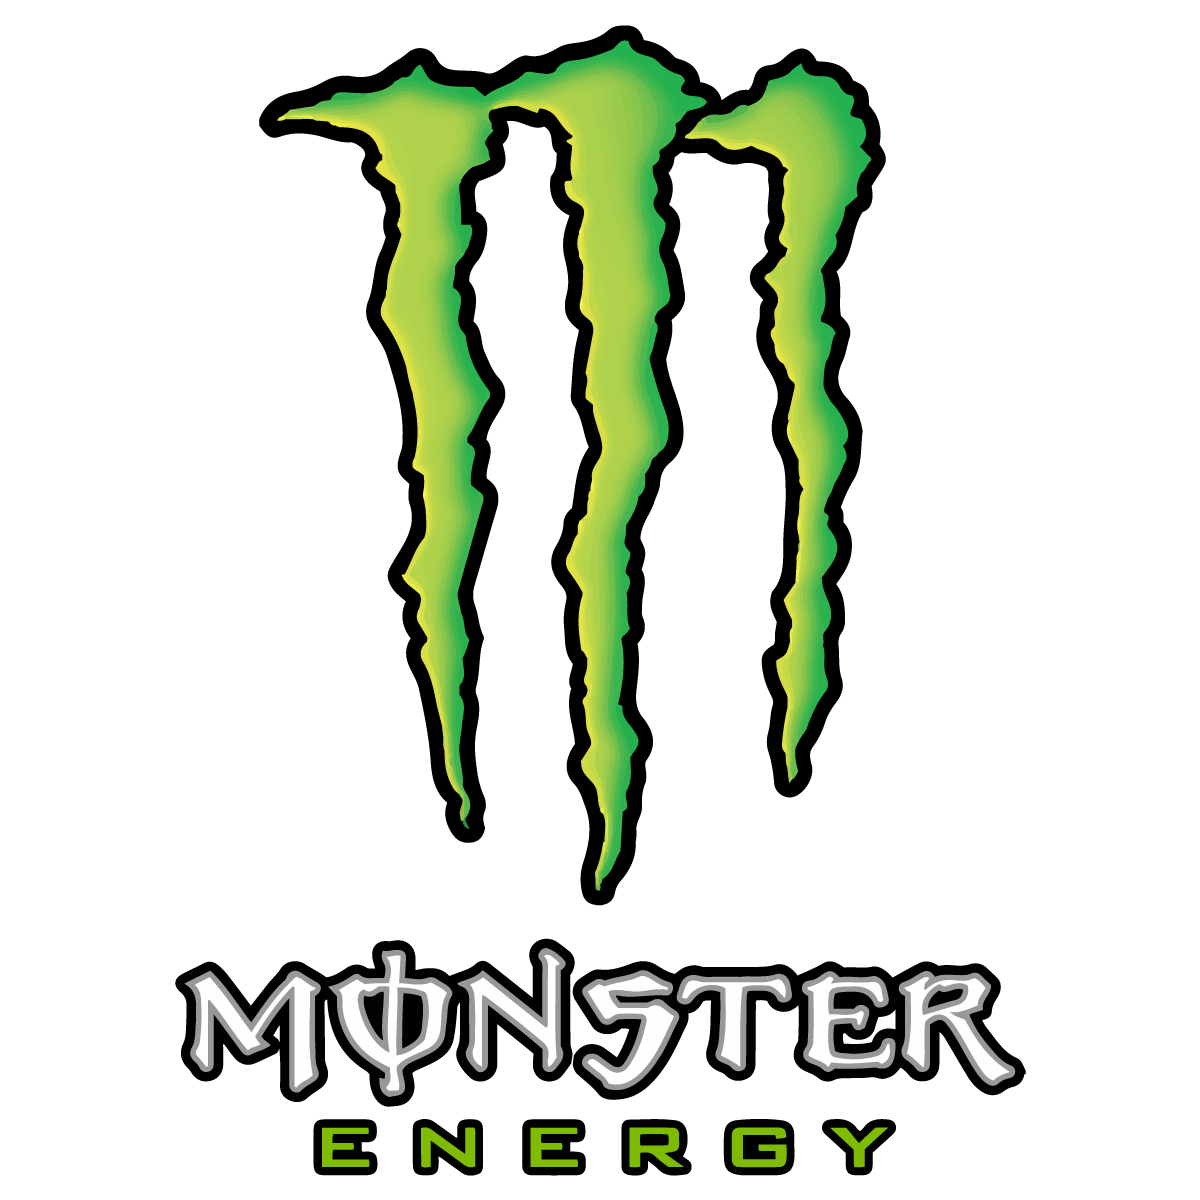 Monster Energy Logo Transparent Free Monster Energy Logo Transparent Png Transparent Images 42860 Pngio